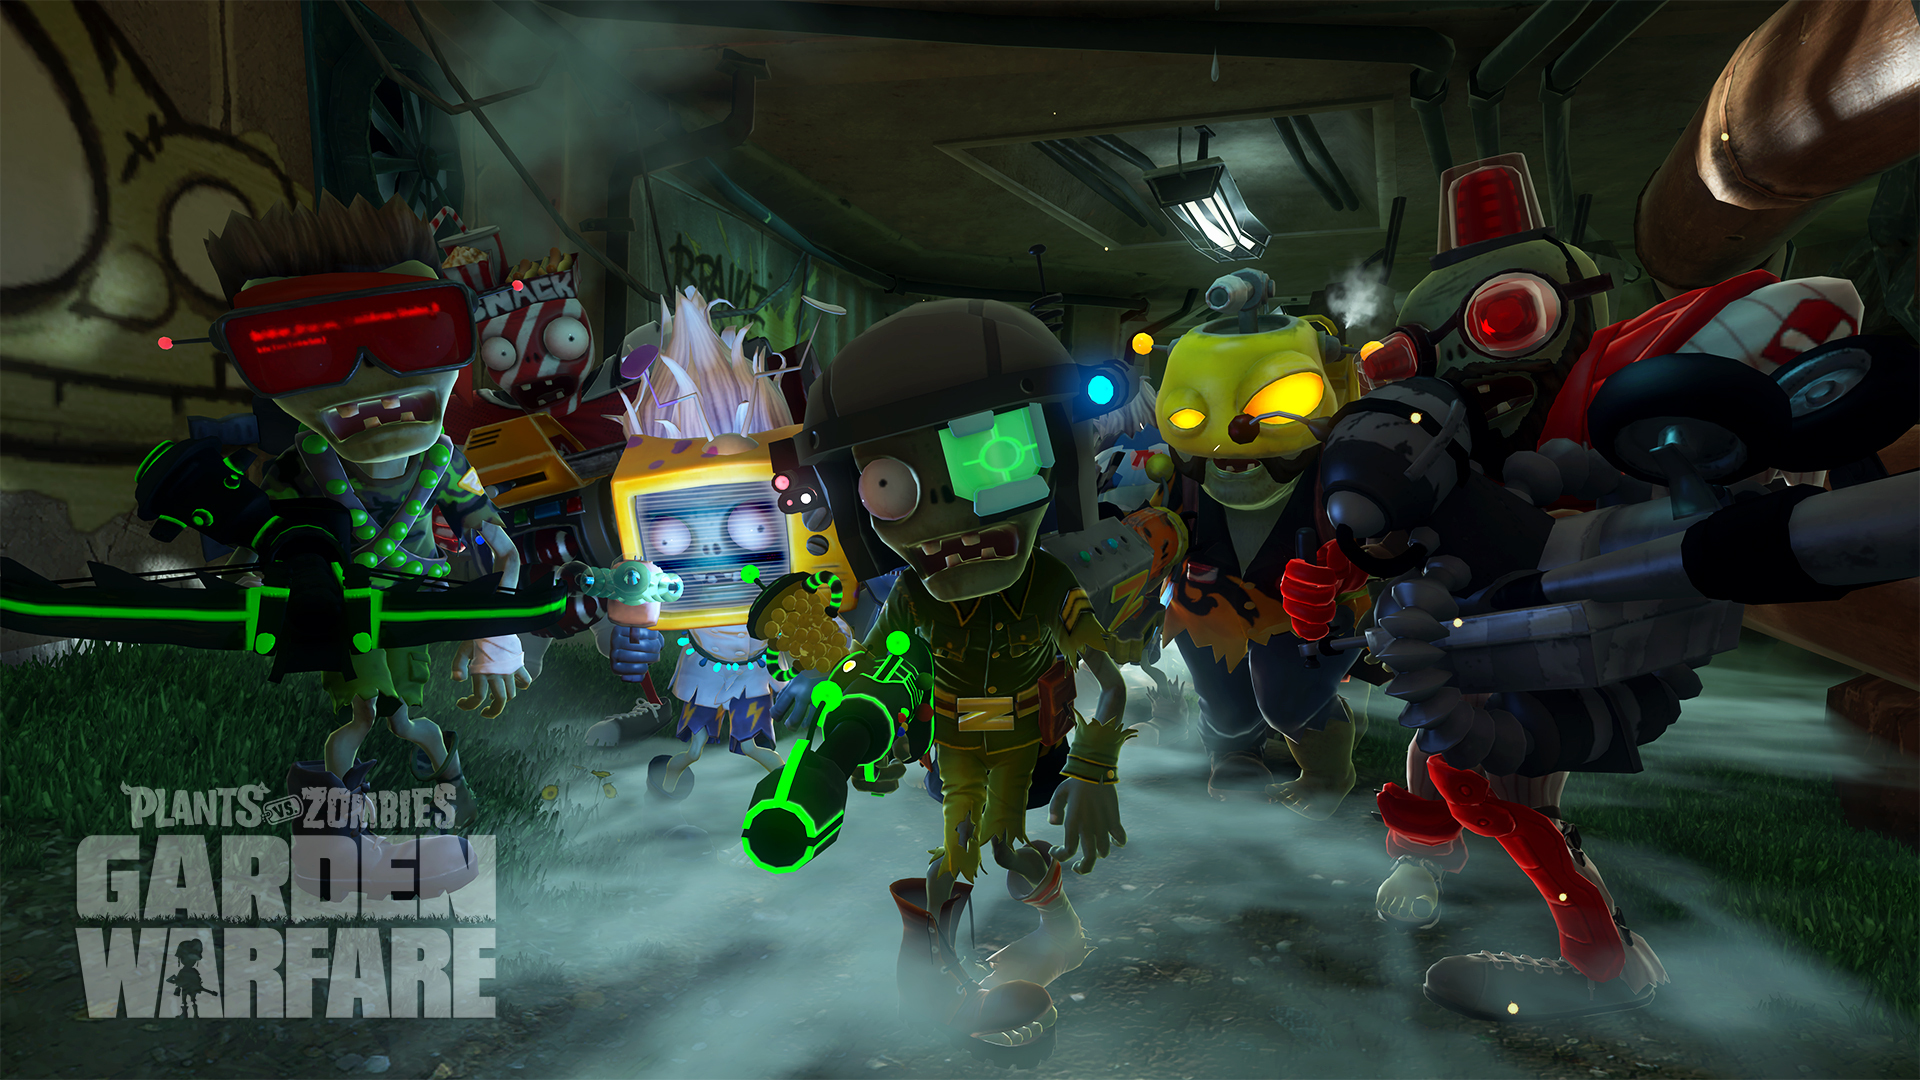 plants vs zombies garden warfare game wallpaper 49040